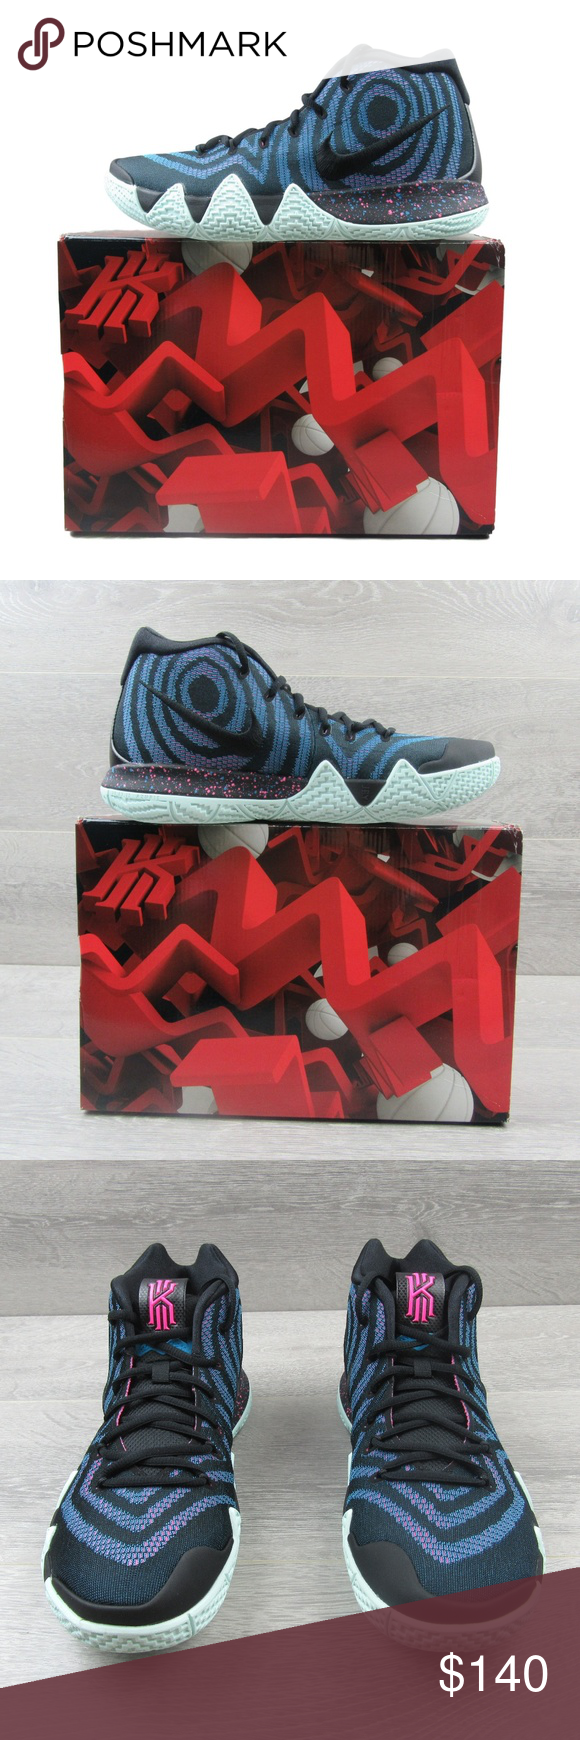 6c84a6e58ef Nike Kyrie 4 Decade Pack 80s Basketball Shoes PRICE FIRM - NO OFFERS Nike  Kyrie 4